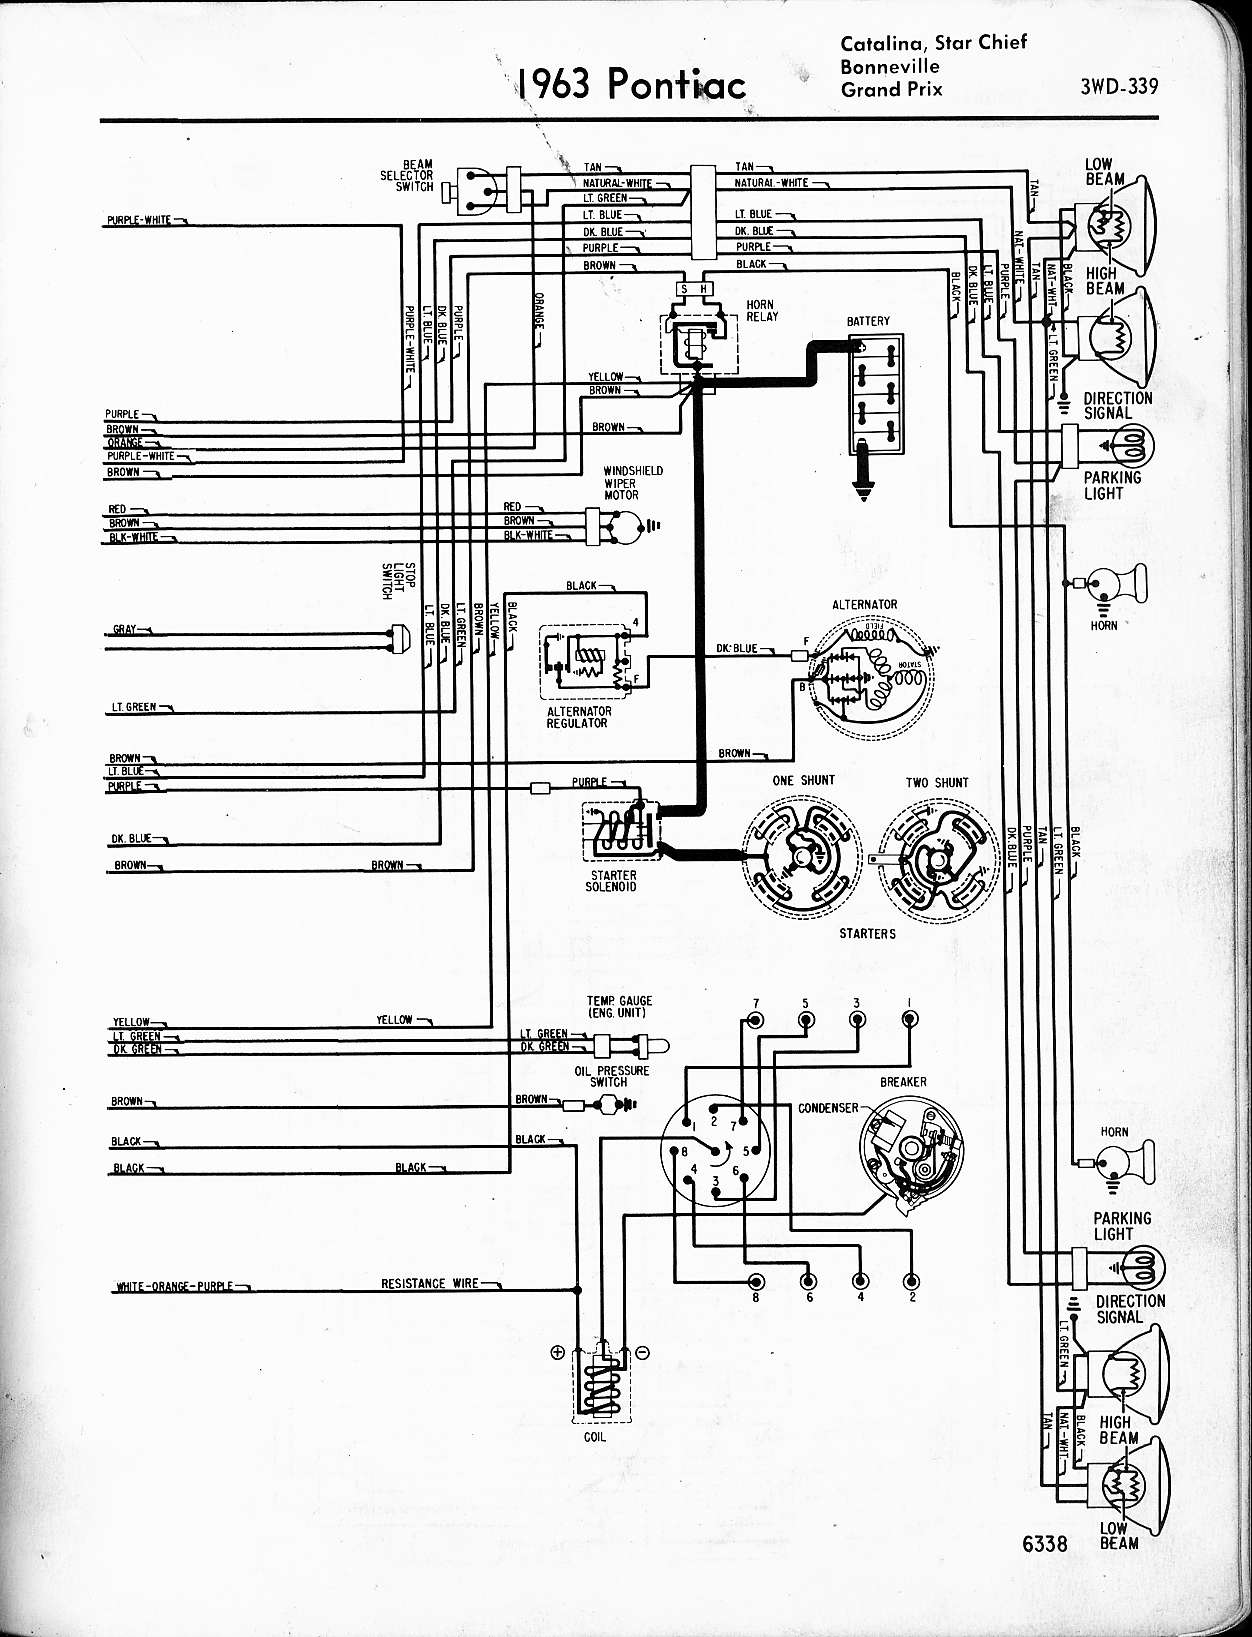 Pontiac Engine Wiring Diagram : Pontiac grand prix vacuum diagram imageresizertool